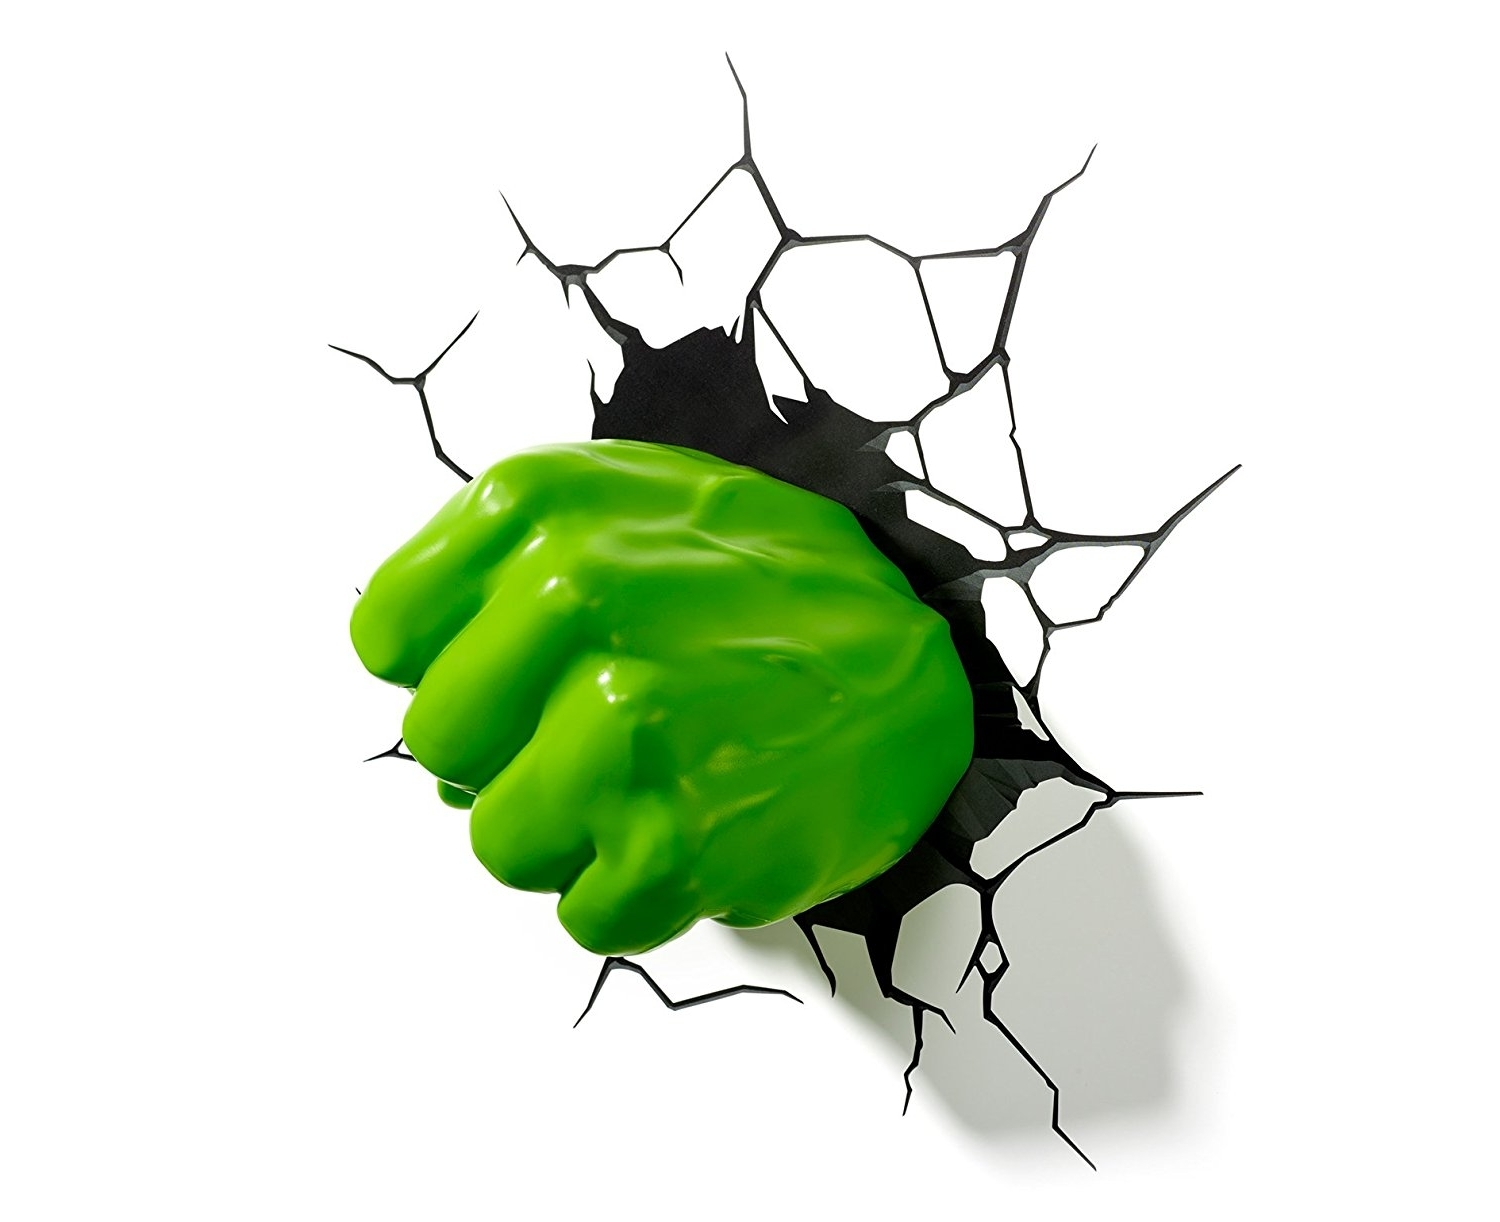 Hulk Hand 3D Wall Art Regarding Newest Marvel Hulk Fist 3D Led Light: Amazon.co (View 8 of 15)